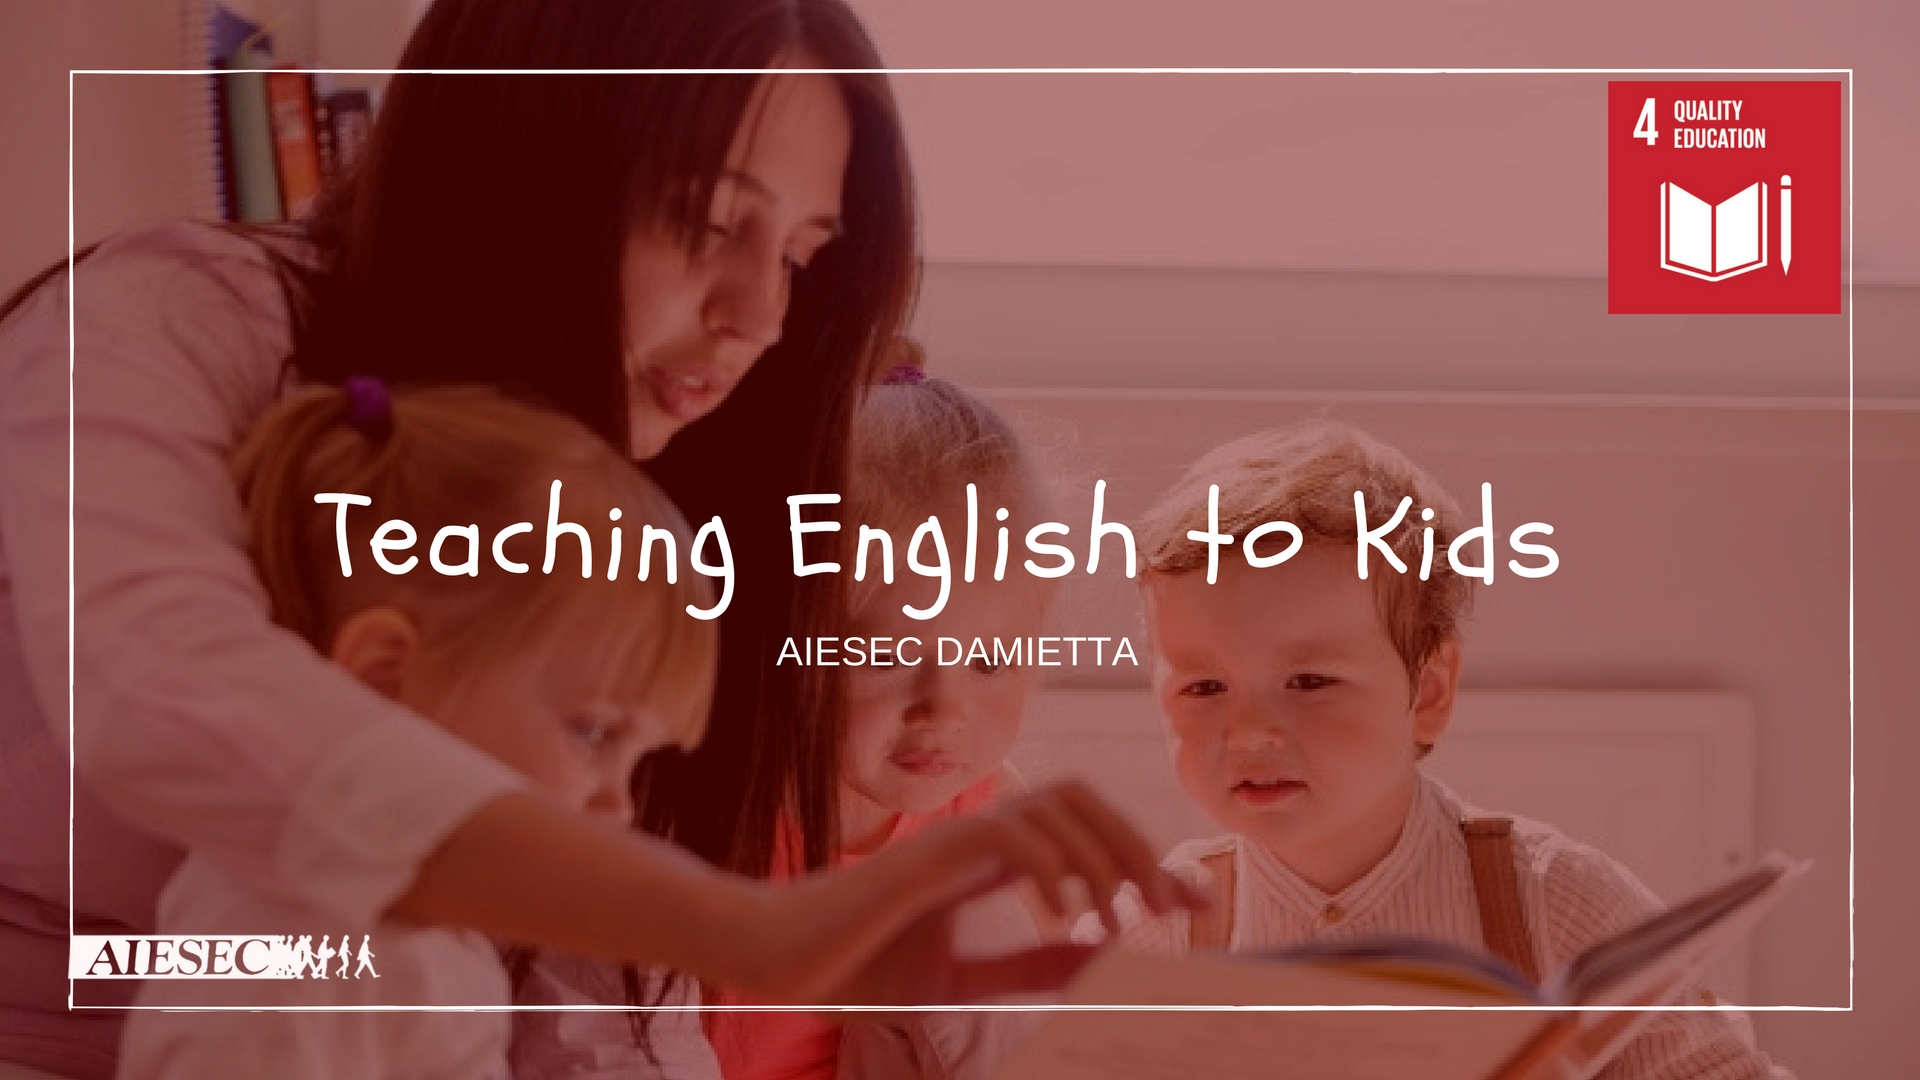 Teaching English To Kids for Quality Education